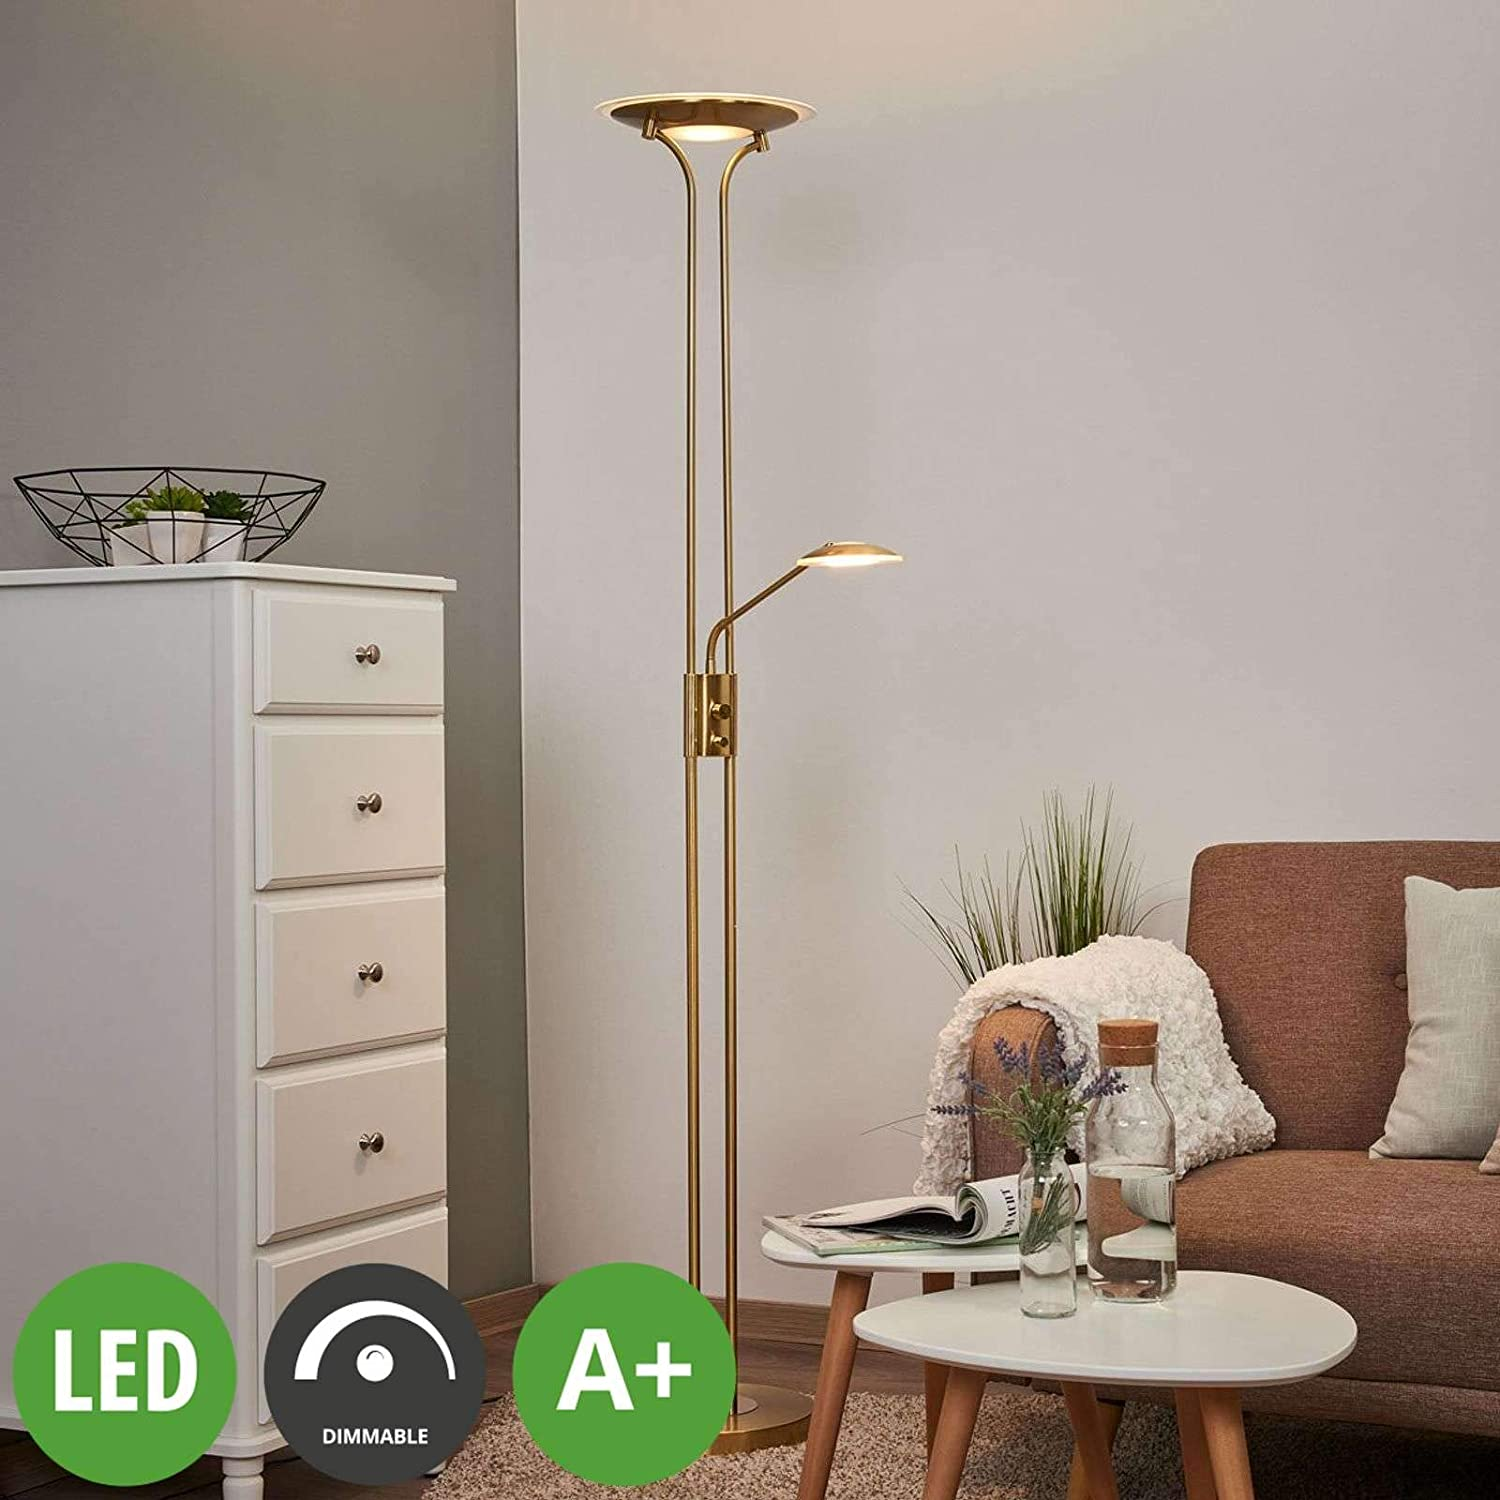 Lindby Led Stehlampe Aras Dimmbar In Gold Messing Aus Metall